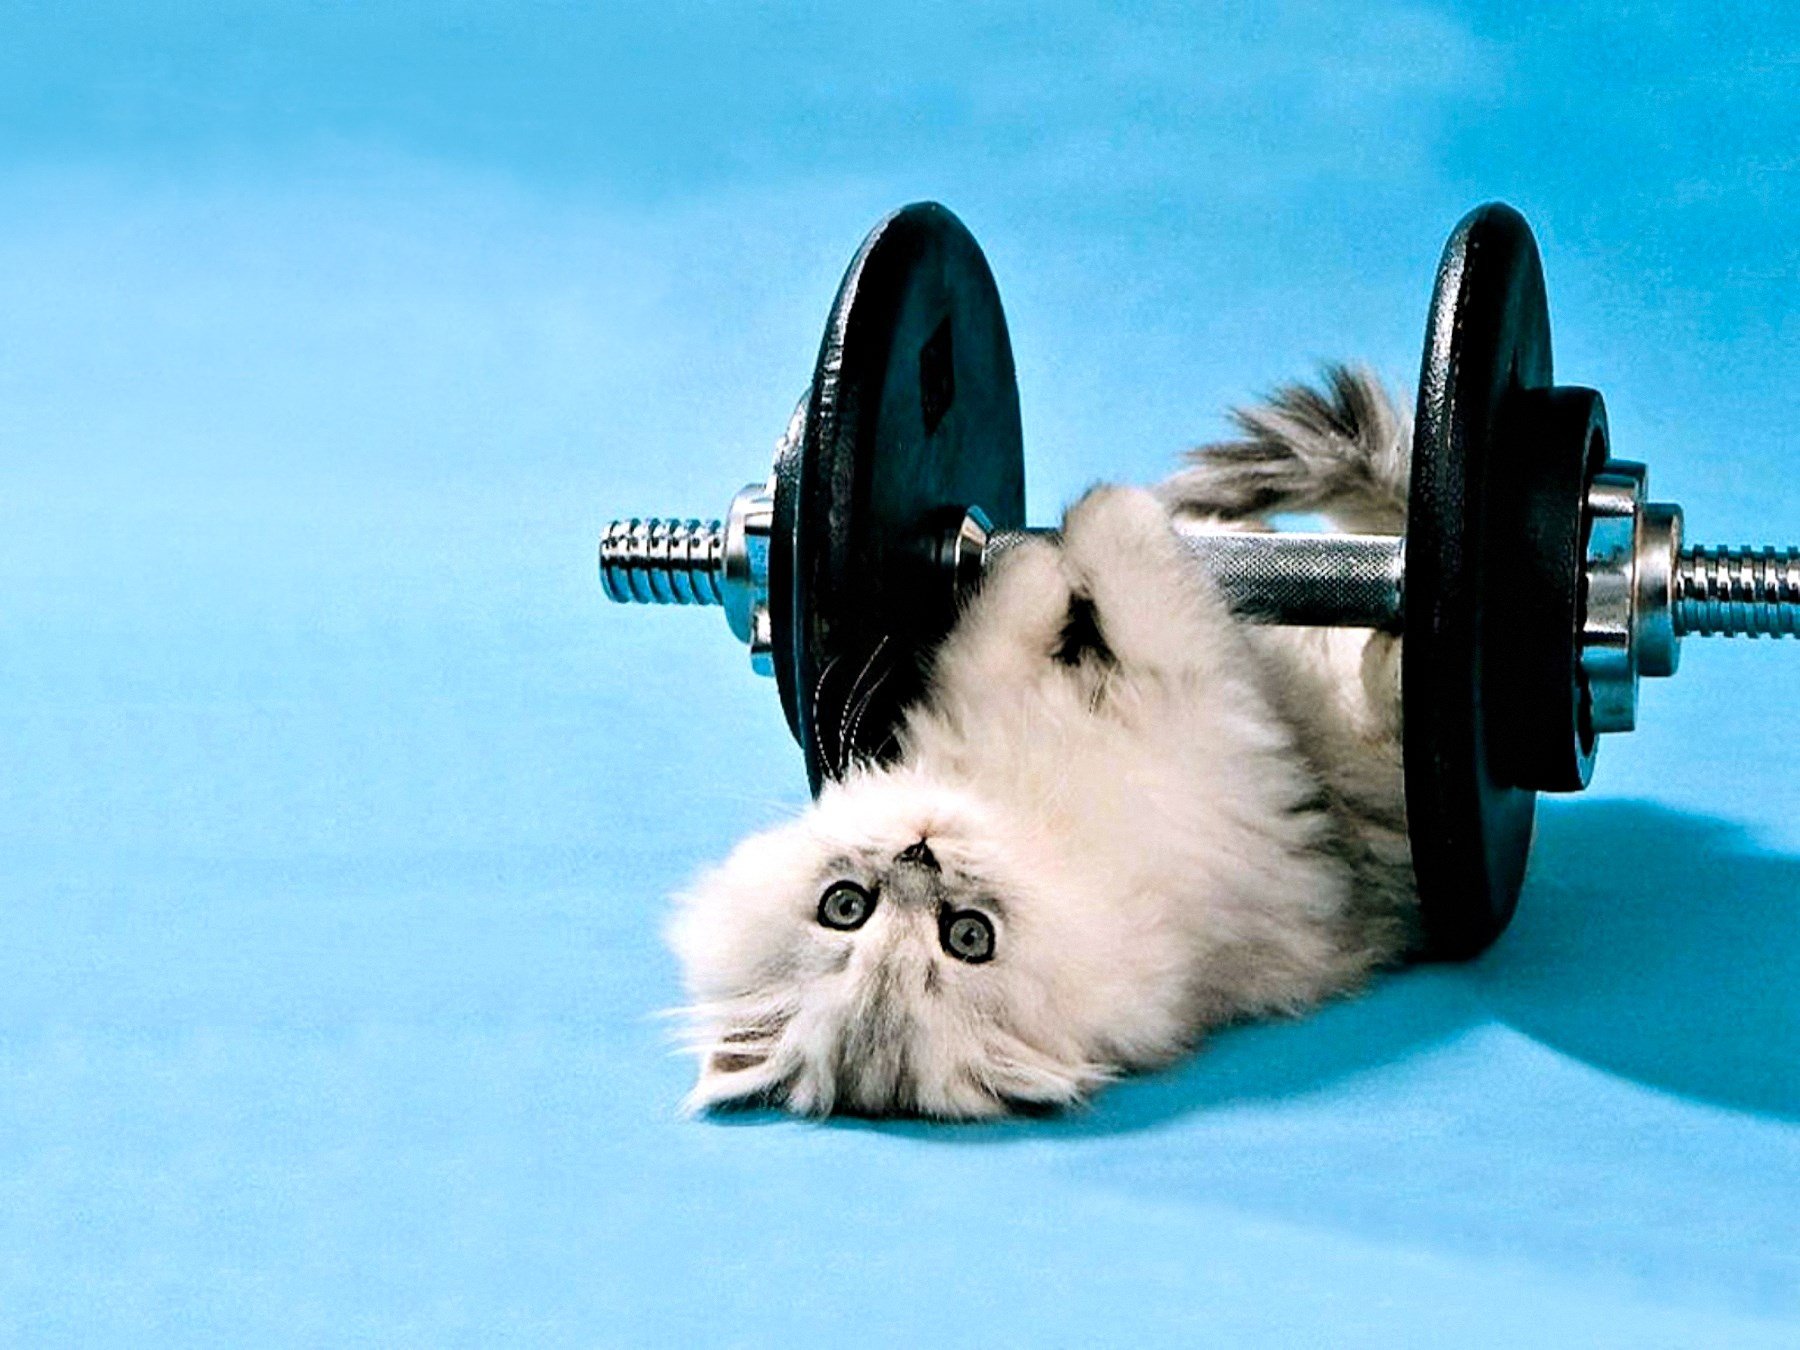 00 cat and weights. 30.03.15